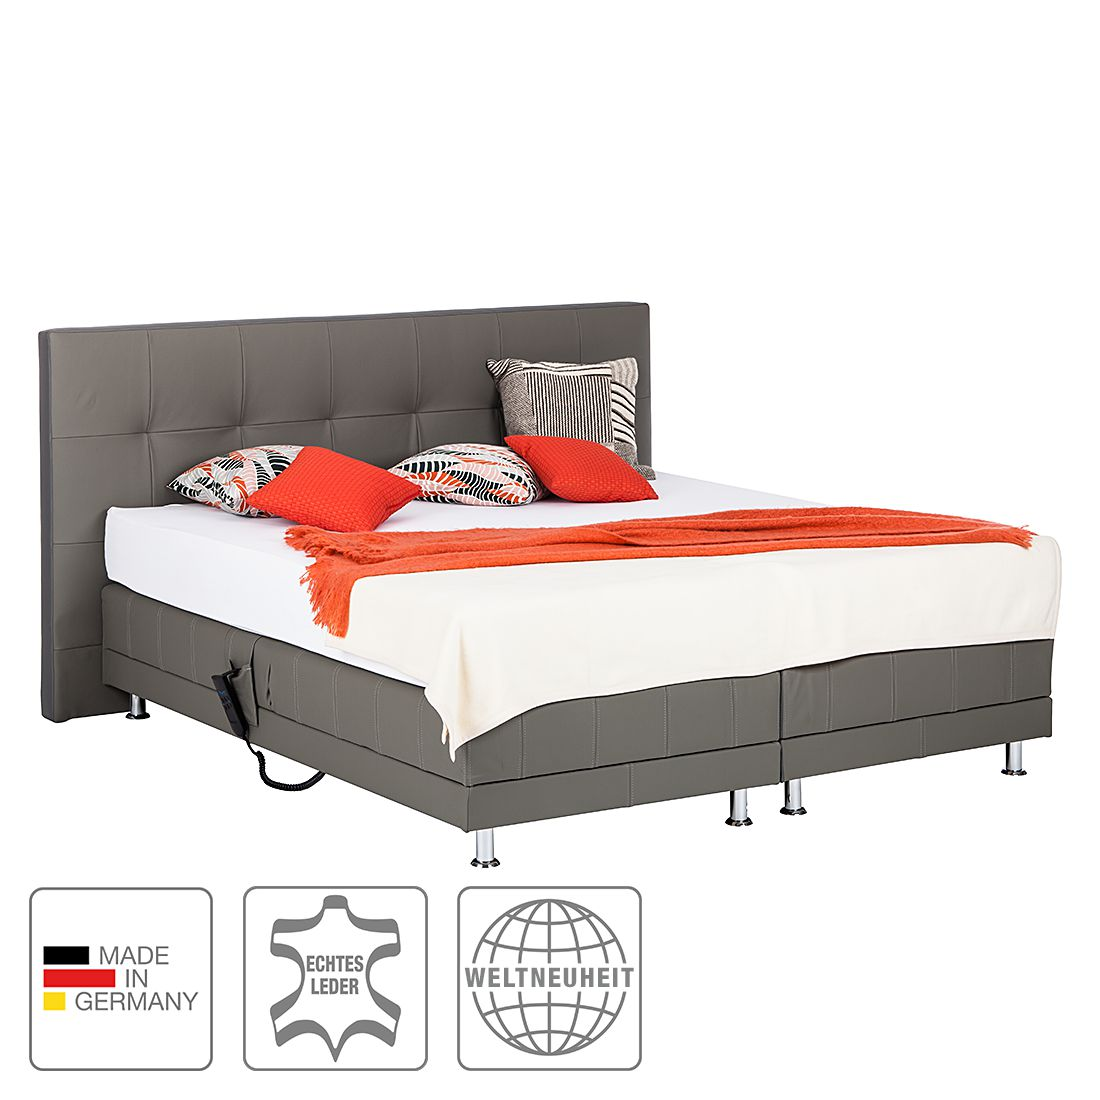 boxspringbett denver echtleder ohne topper 140 x 200cm h3 ab 80 kg grau art of sleep. Black Bedroom Furniture Sets. Home Design Ideas